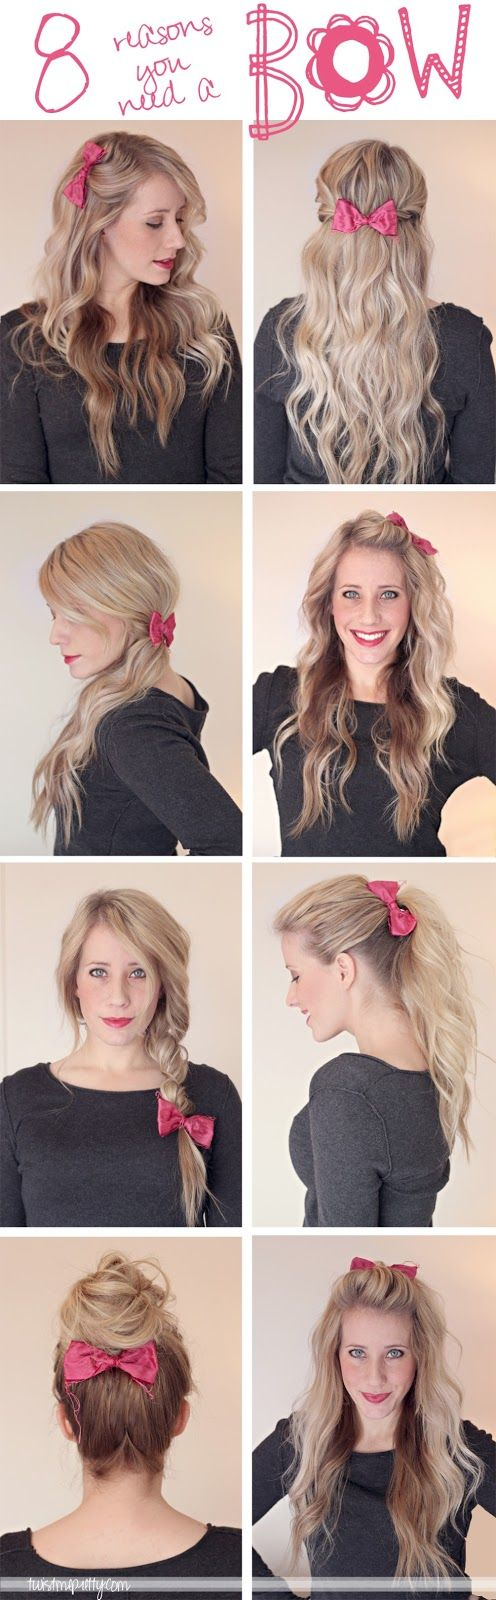 So cute love it crafts pinterest hair style makeup and